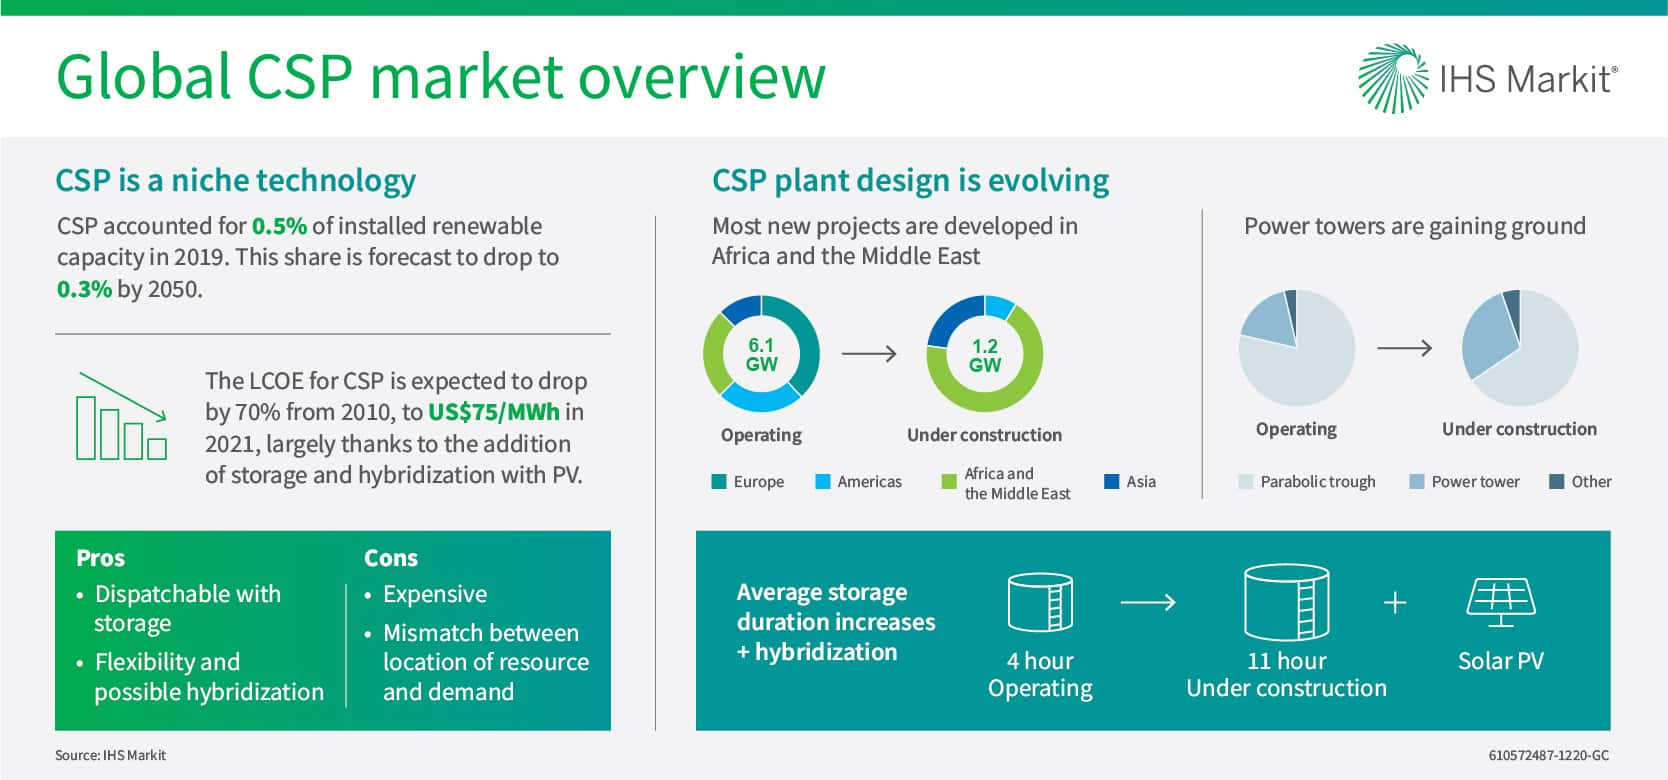 Global CSP market overview